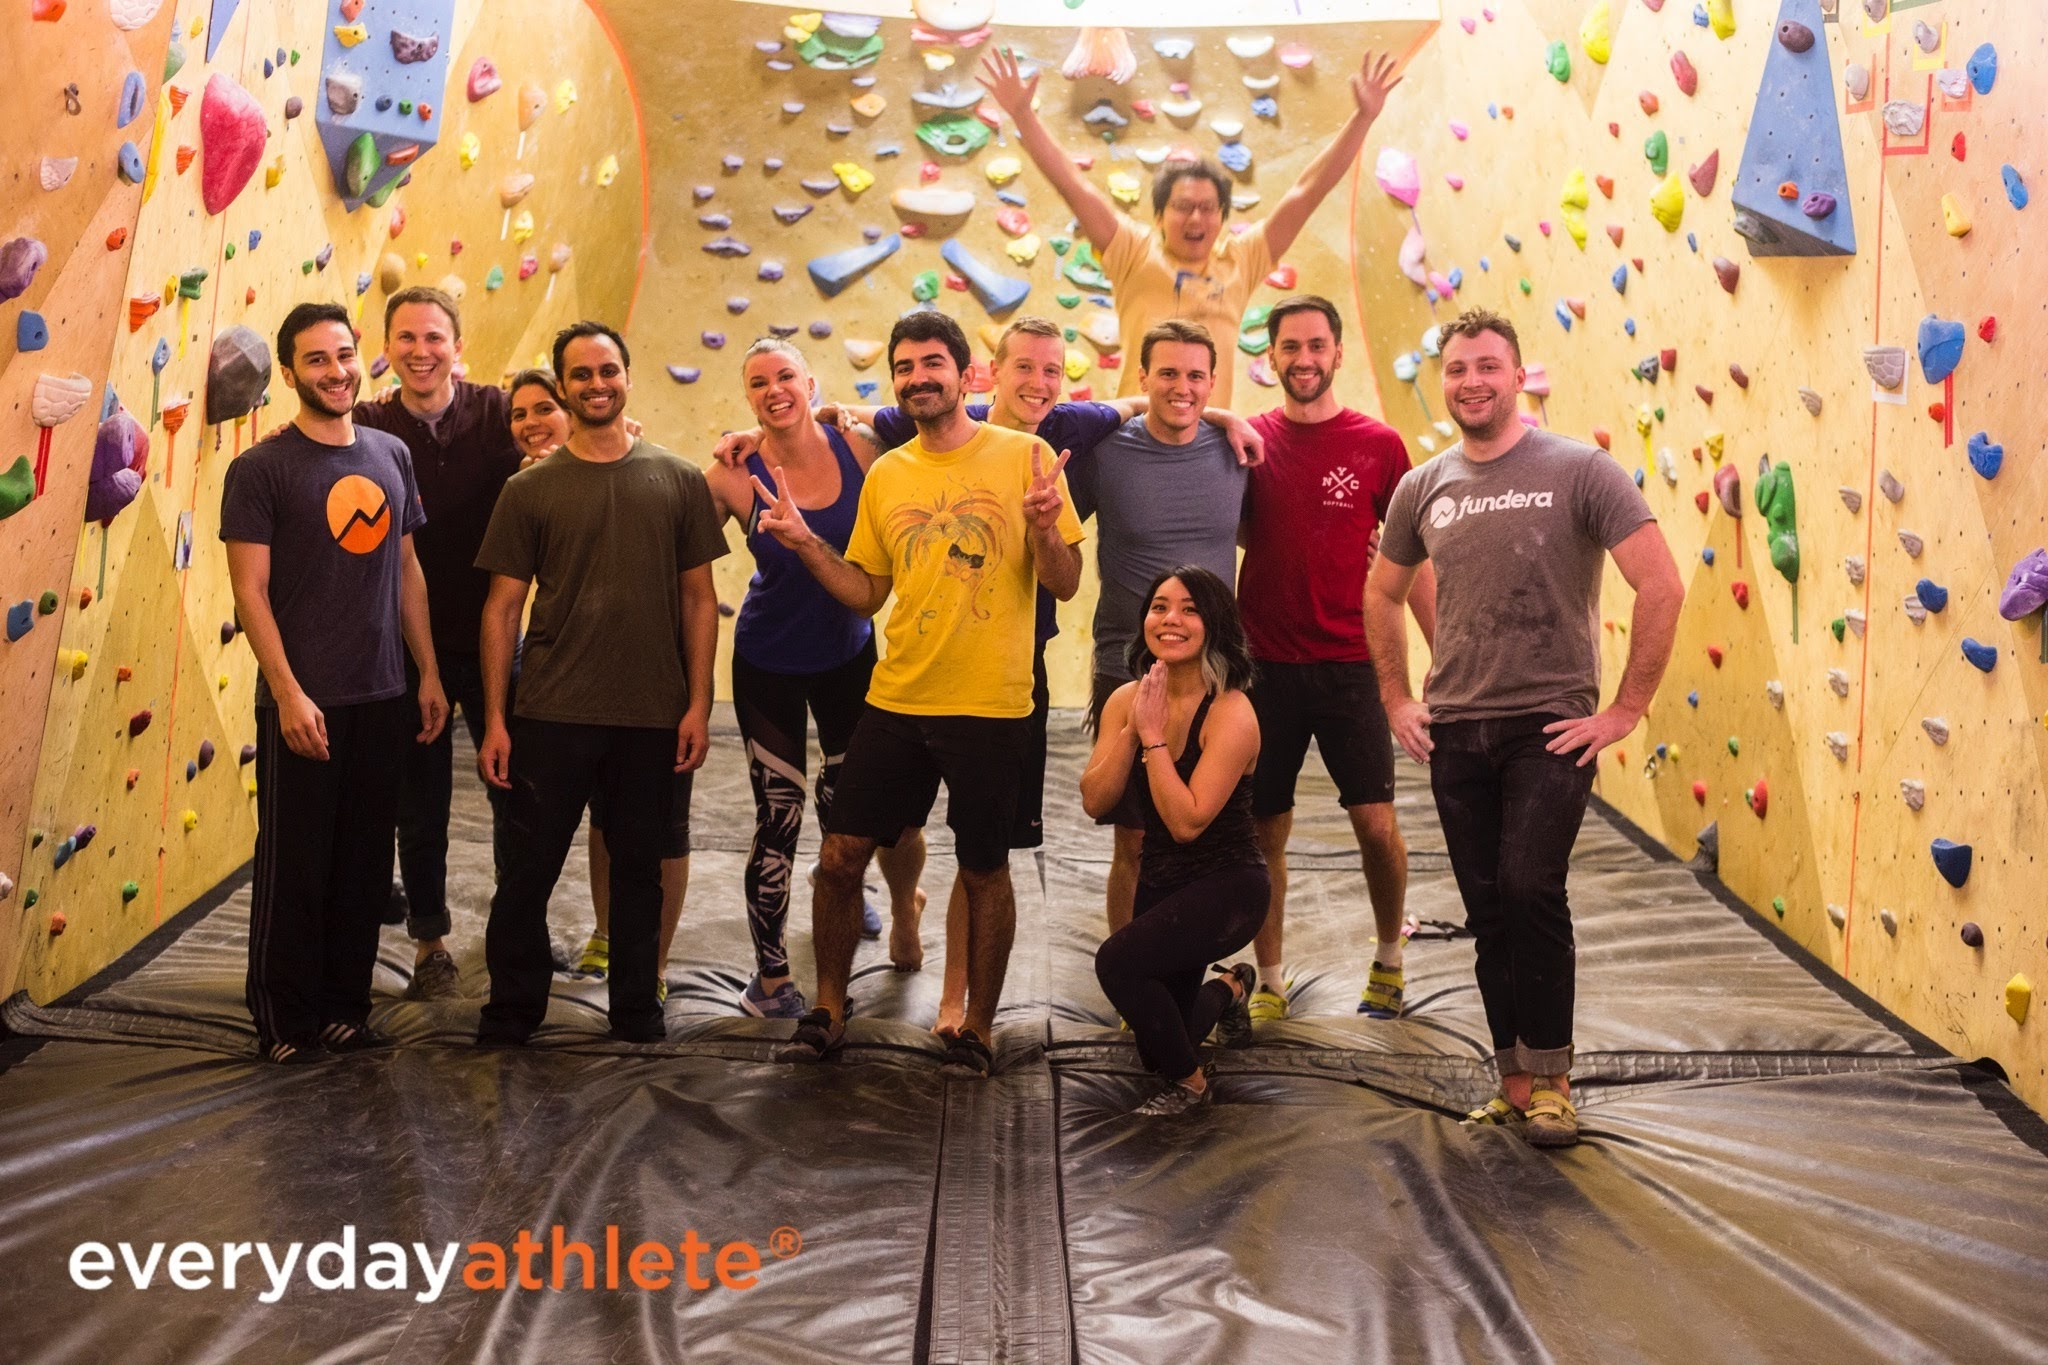 Fundera team at Everyday Athlete